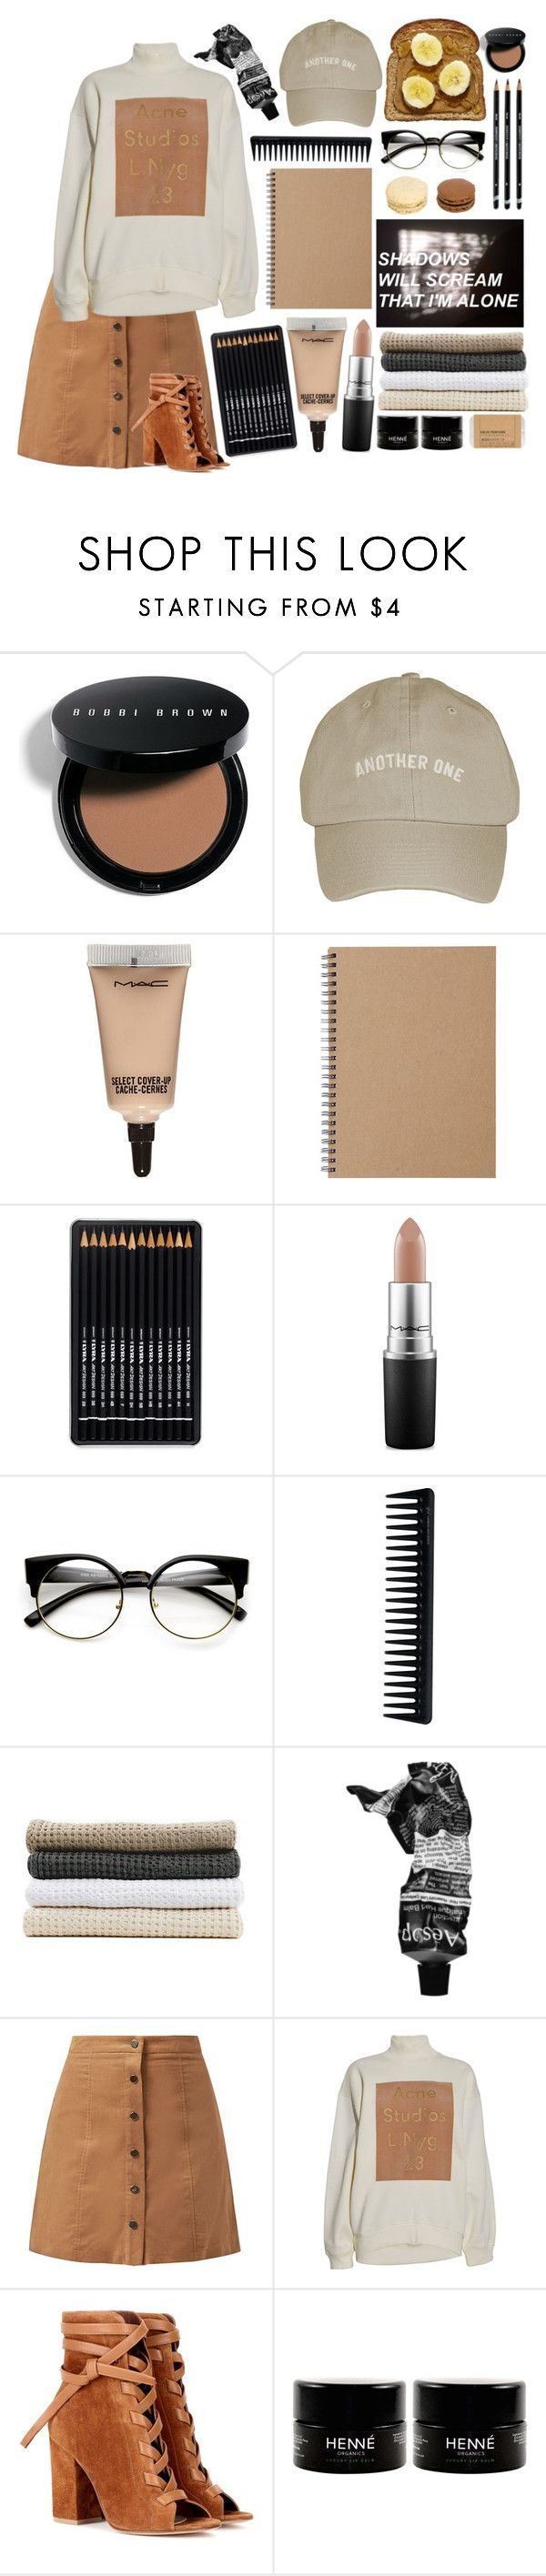 """"""":Shadows in the night:"""" by bullettpatch ❤ liked on Polyvore featuring Bobbi Brown Cosmetics, MAC Cosmetics, Muji, GHD, Abyss & Habidecor, Aesop, Acne Studios, Gianvito Rossi and Le Labo"""